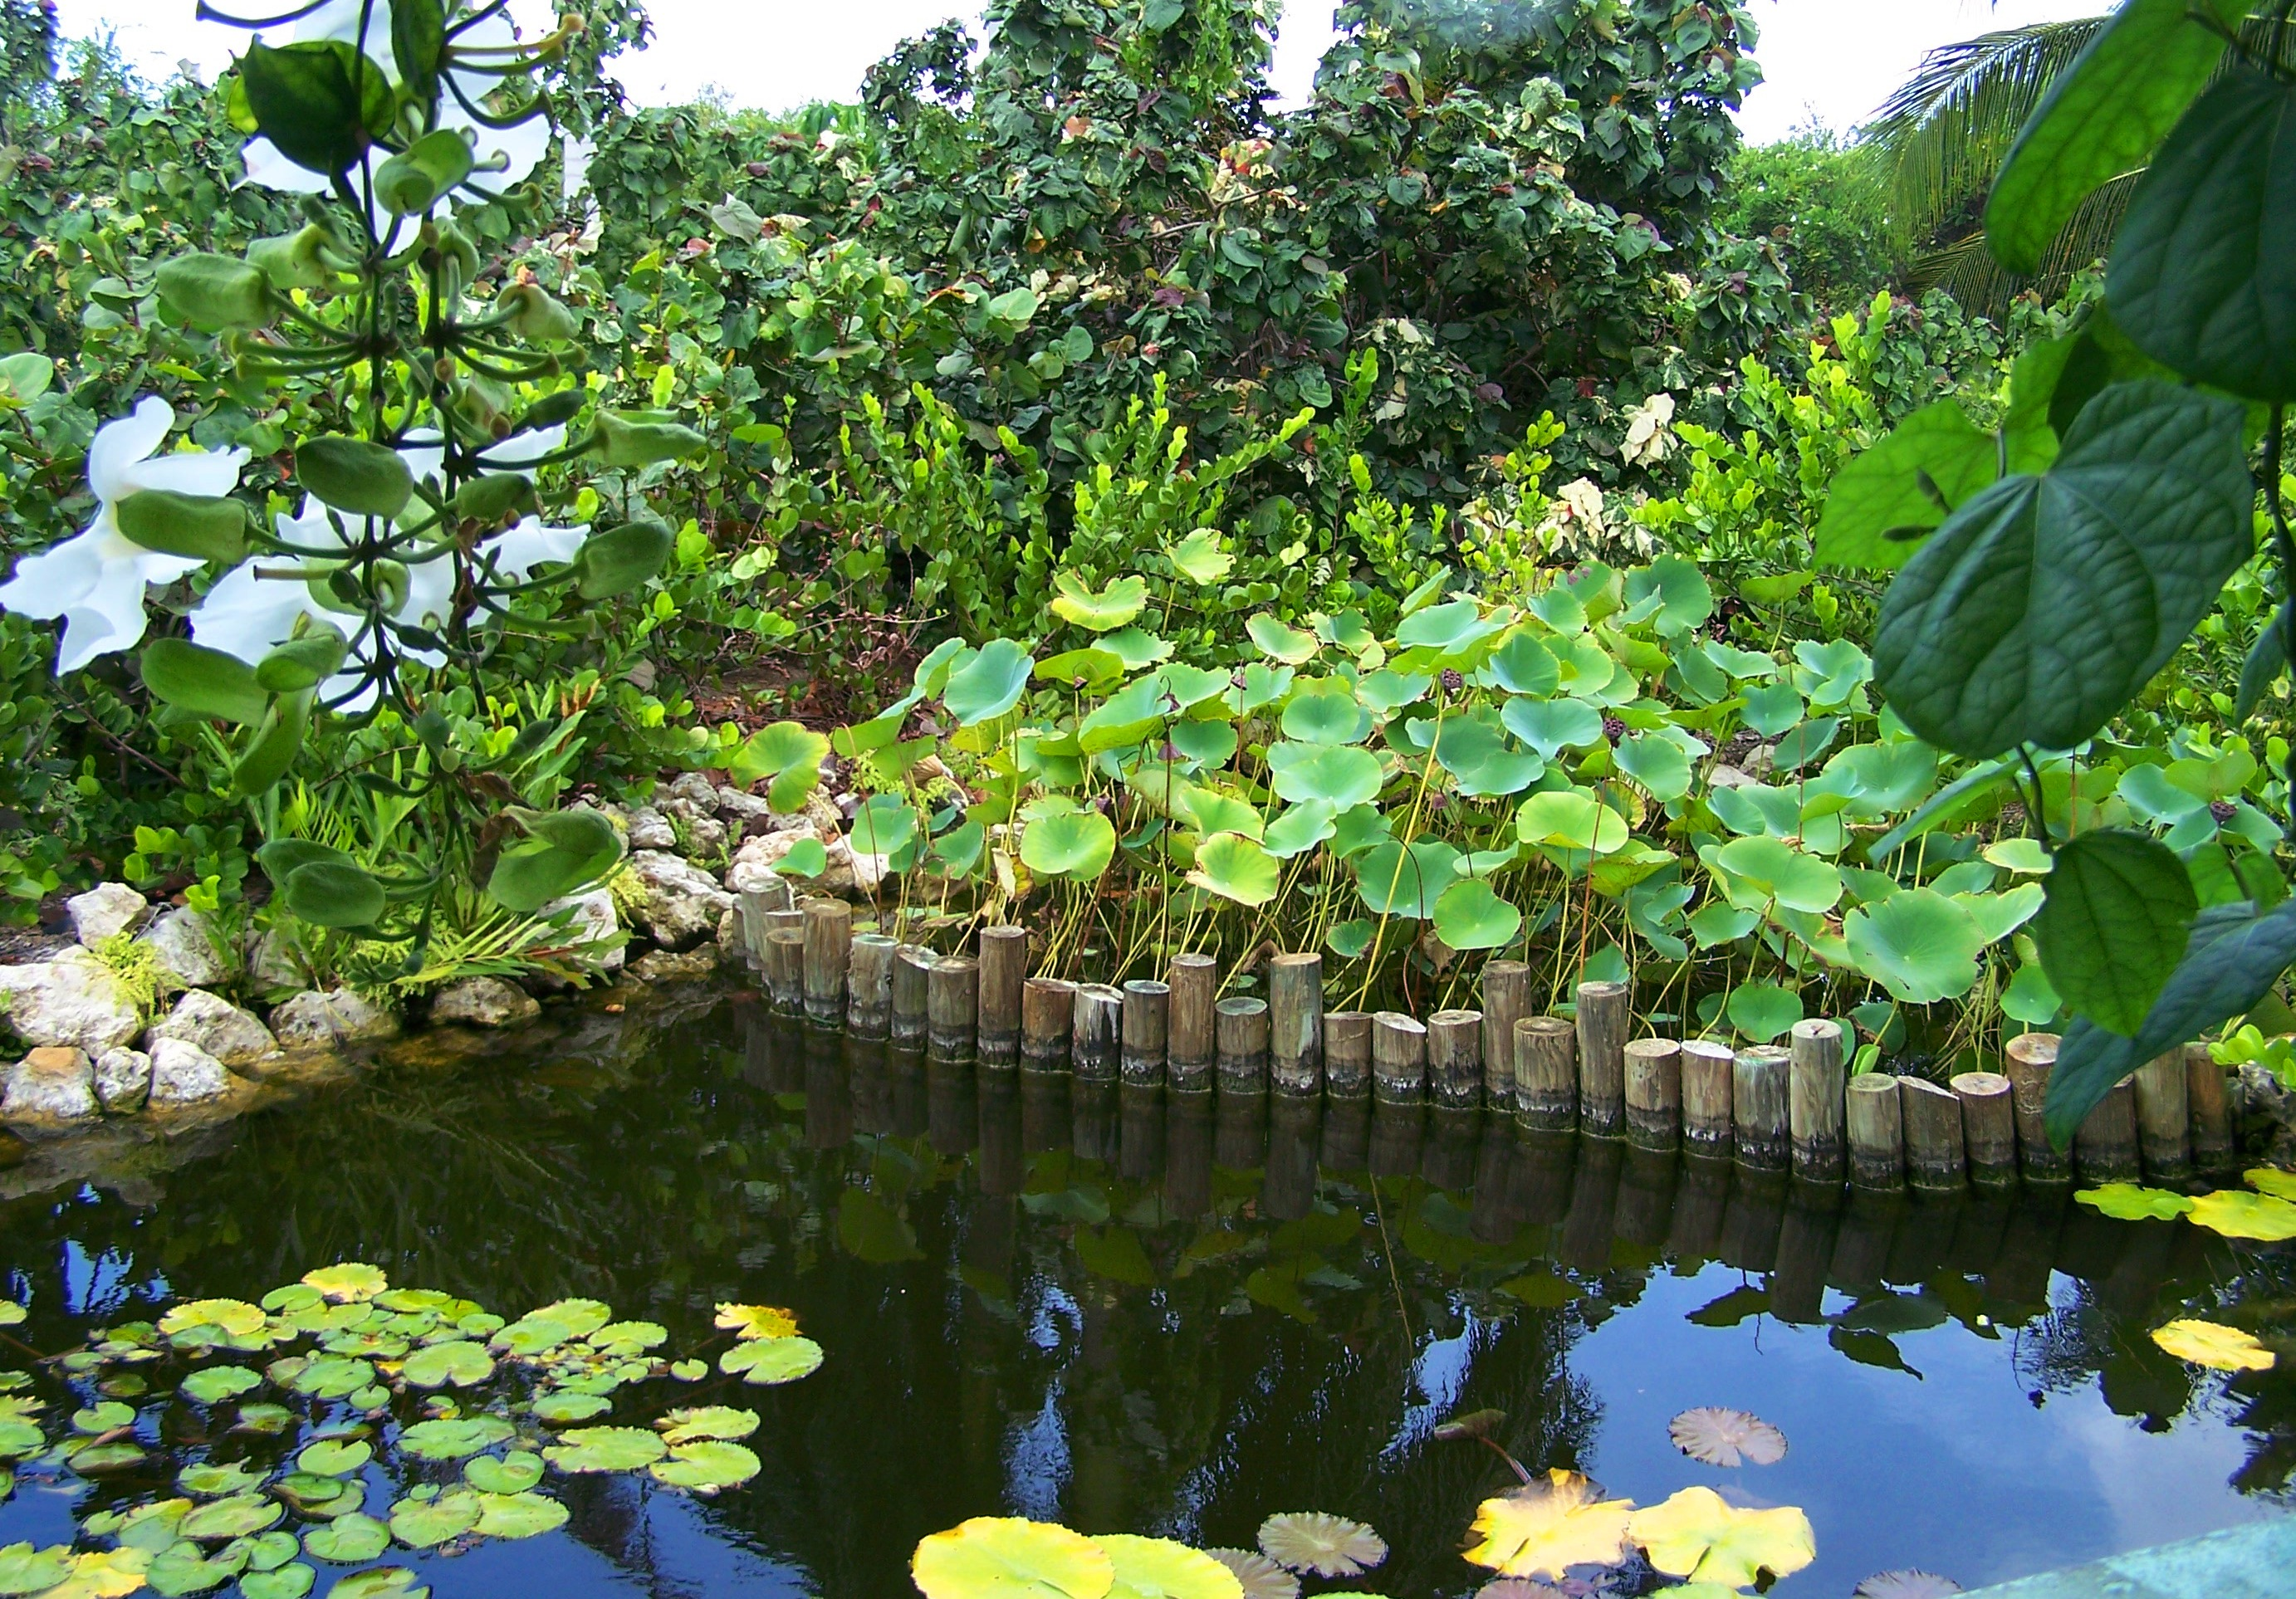 Cayman Islands Botanic Park